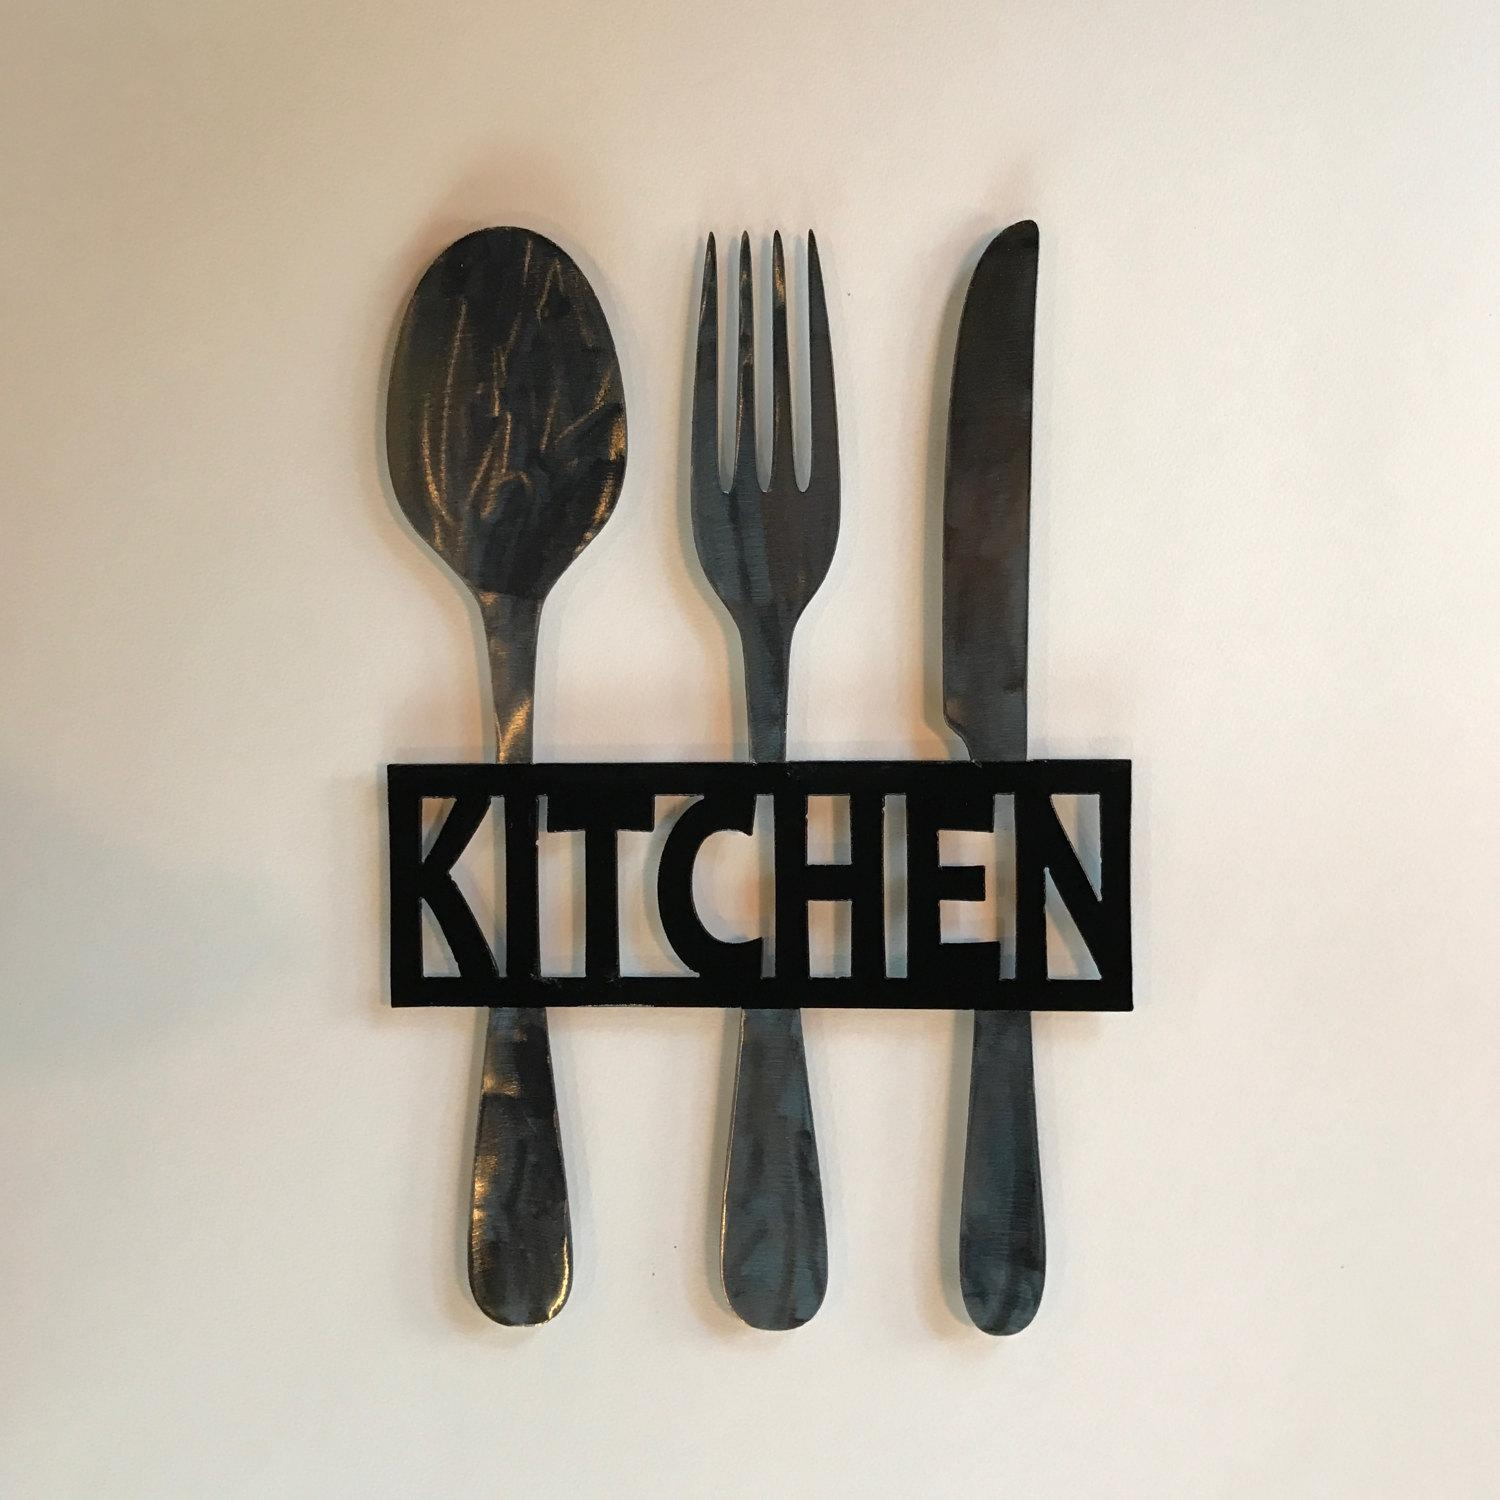 Kitchen : Art For Sale Framed Art Living Room Wall Decor Artwork Inside Utensil Wall Art (View 12 of 21)